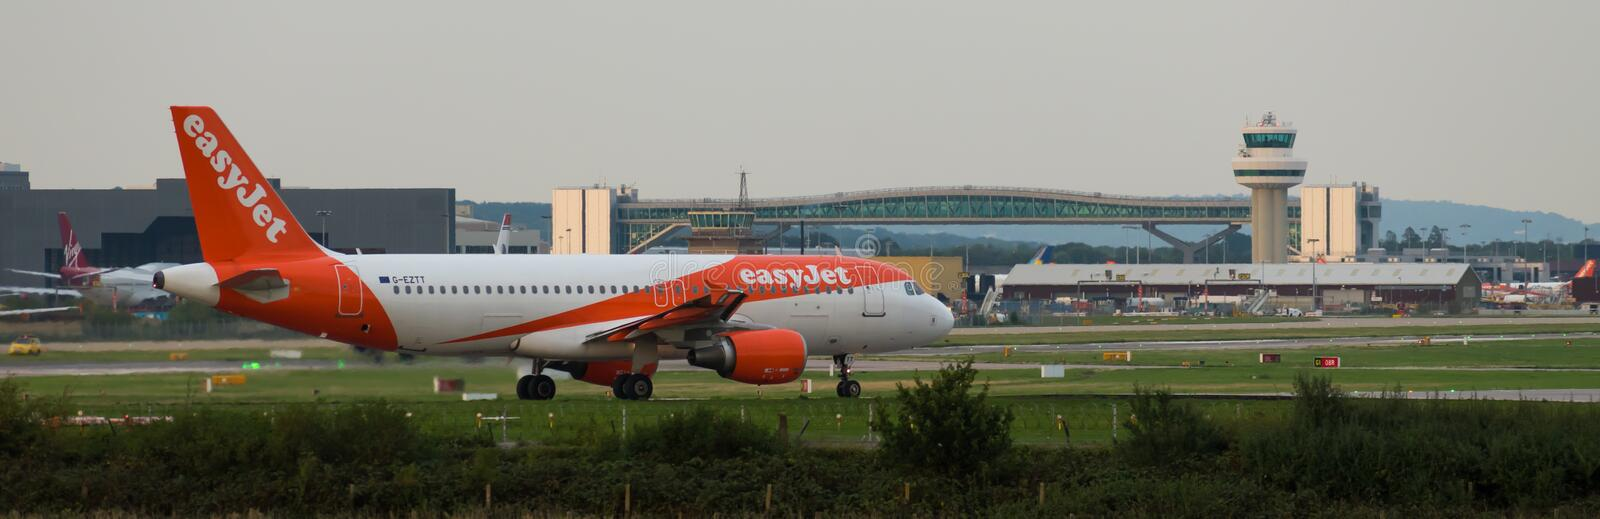 GATWICK AIRPORT, ENGLAND, UK – AUGUST 30 2018: An easyJet Airlines plane prepares to take off from Gatwick Airport. Overlooked by the air traffic control stock photos